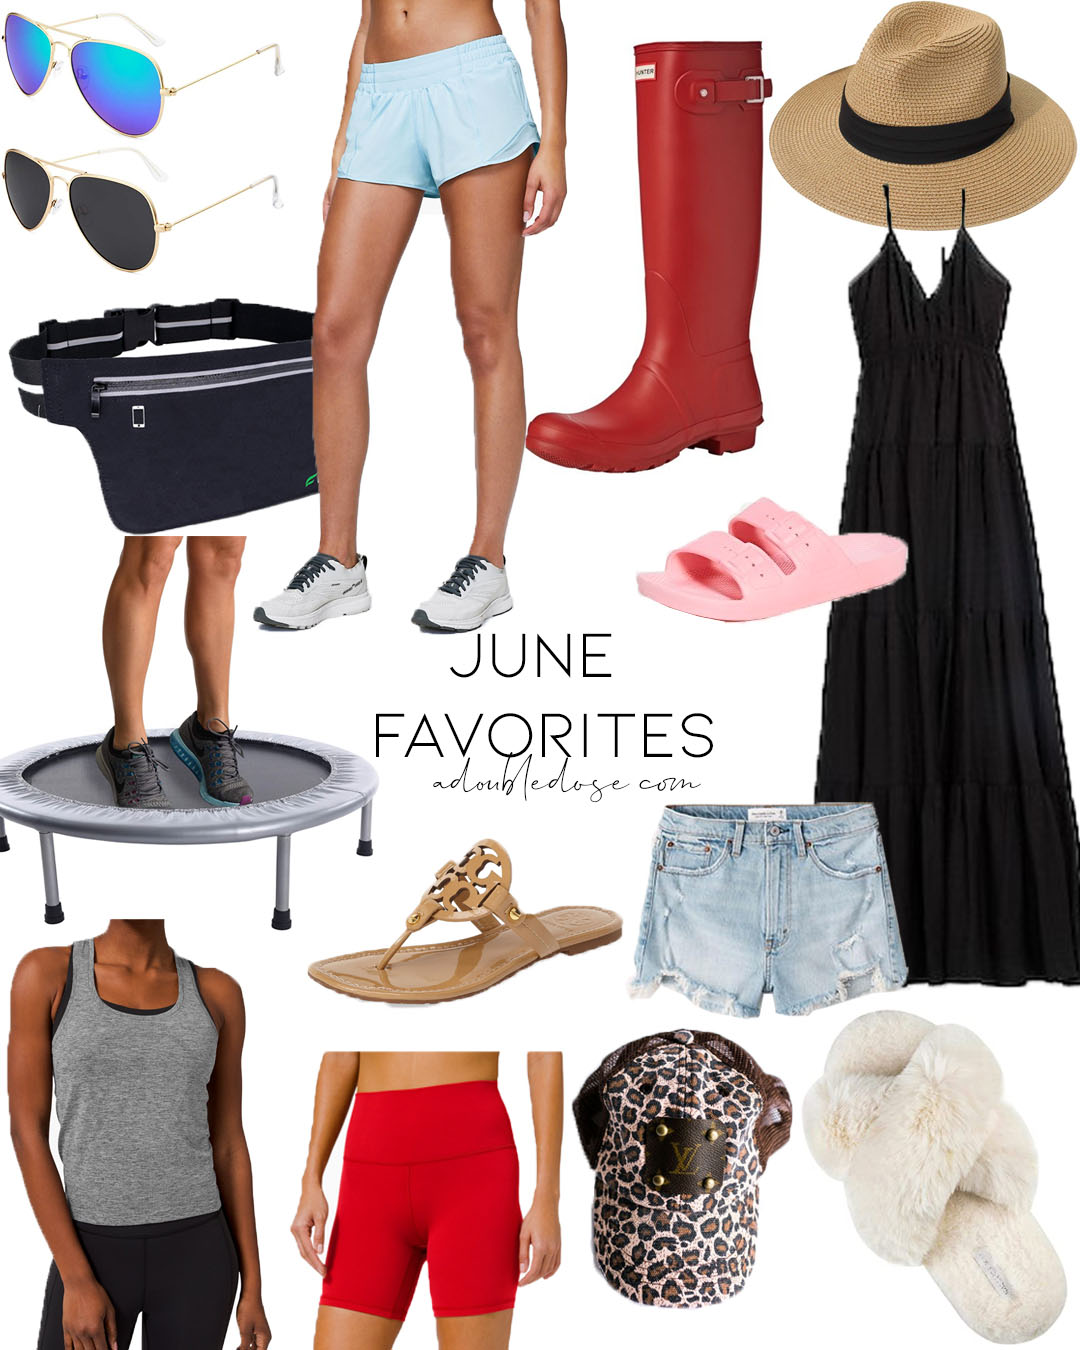 lifestyle and fashion blogger alexis belbel sharing her may favorites including comfy slippers lululemon lululemon running shorts, black maxi dress, affordable rebounder trampoline, slide sandals, hunter rain boots and more | adoubledose.com